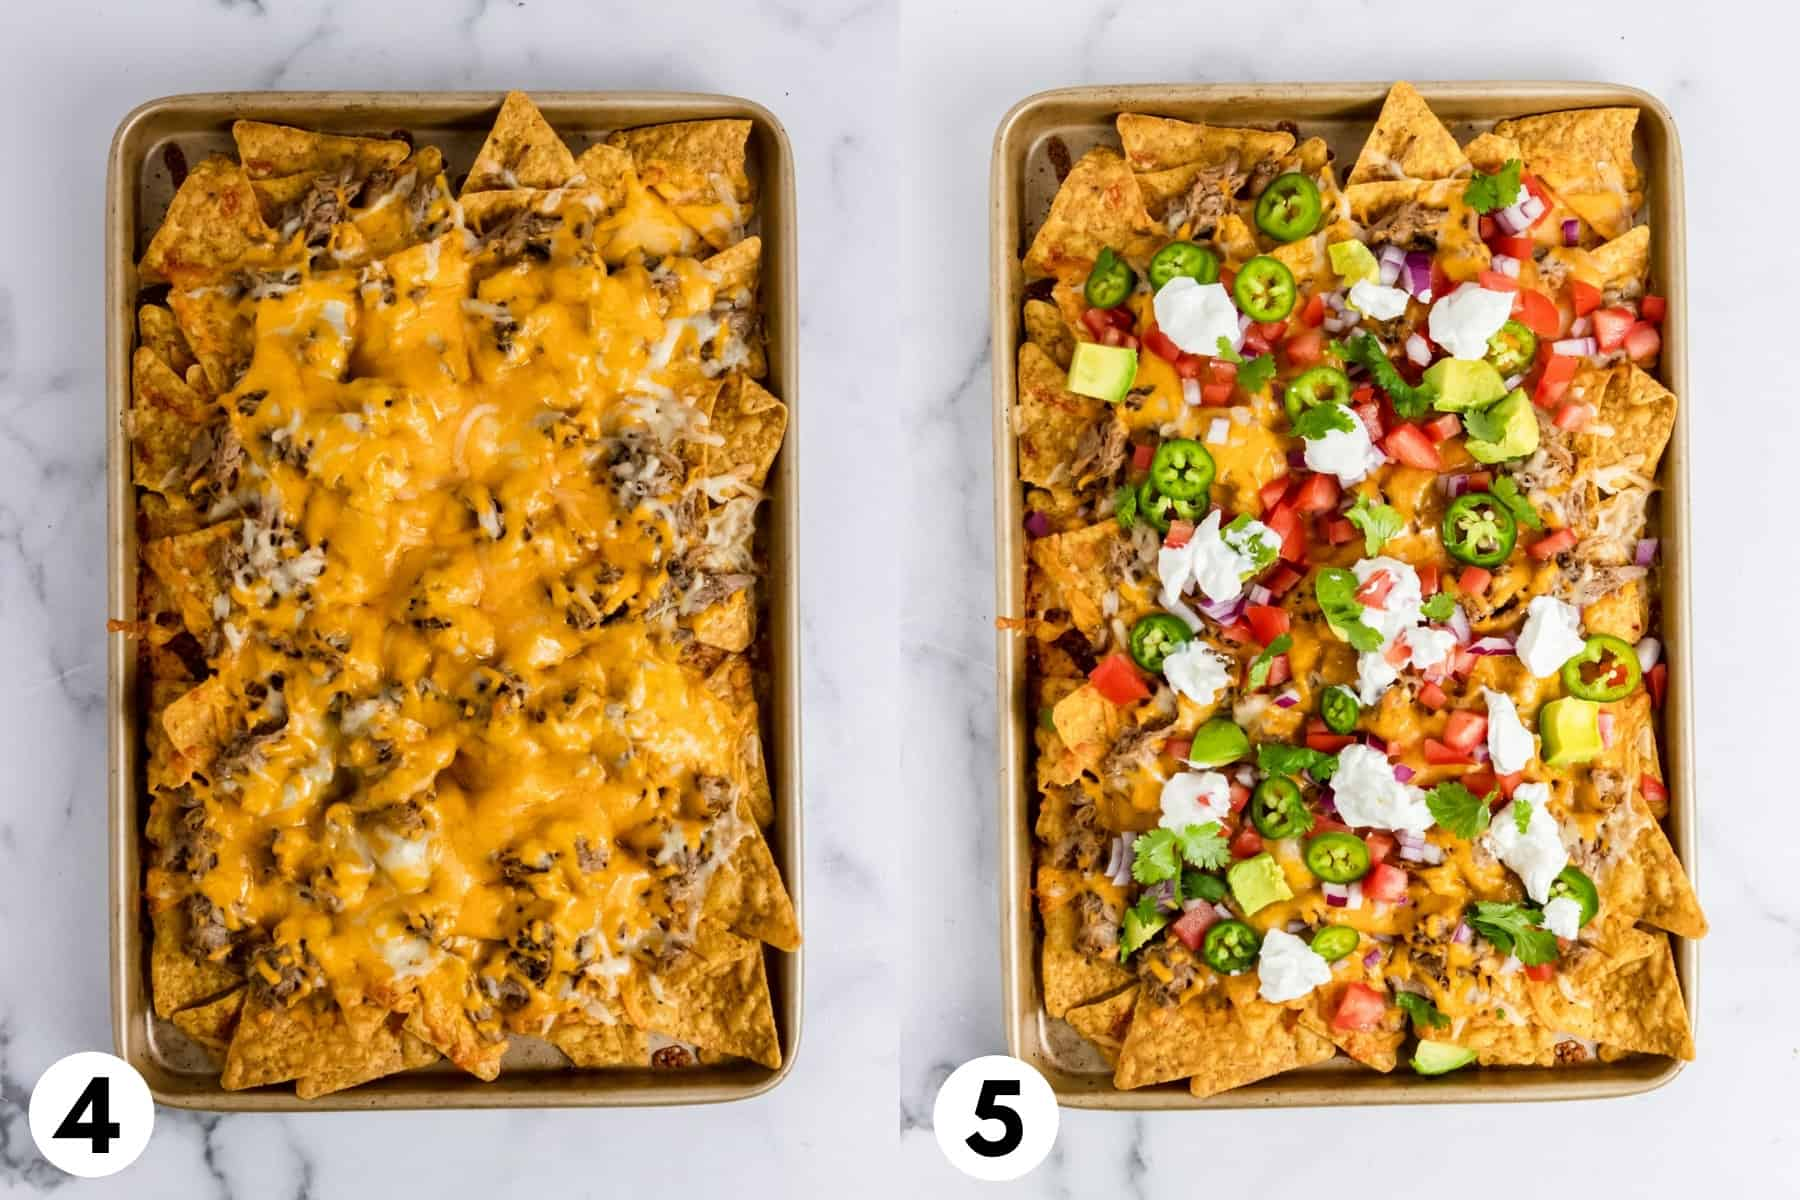 Cooked nachos with toppings on sheet pan.